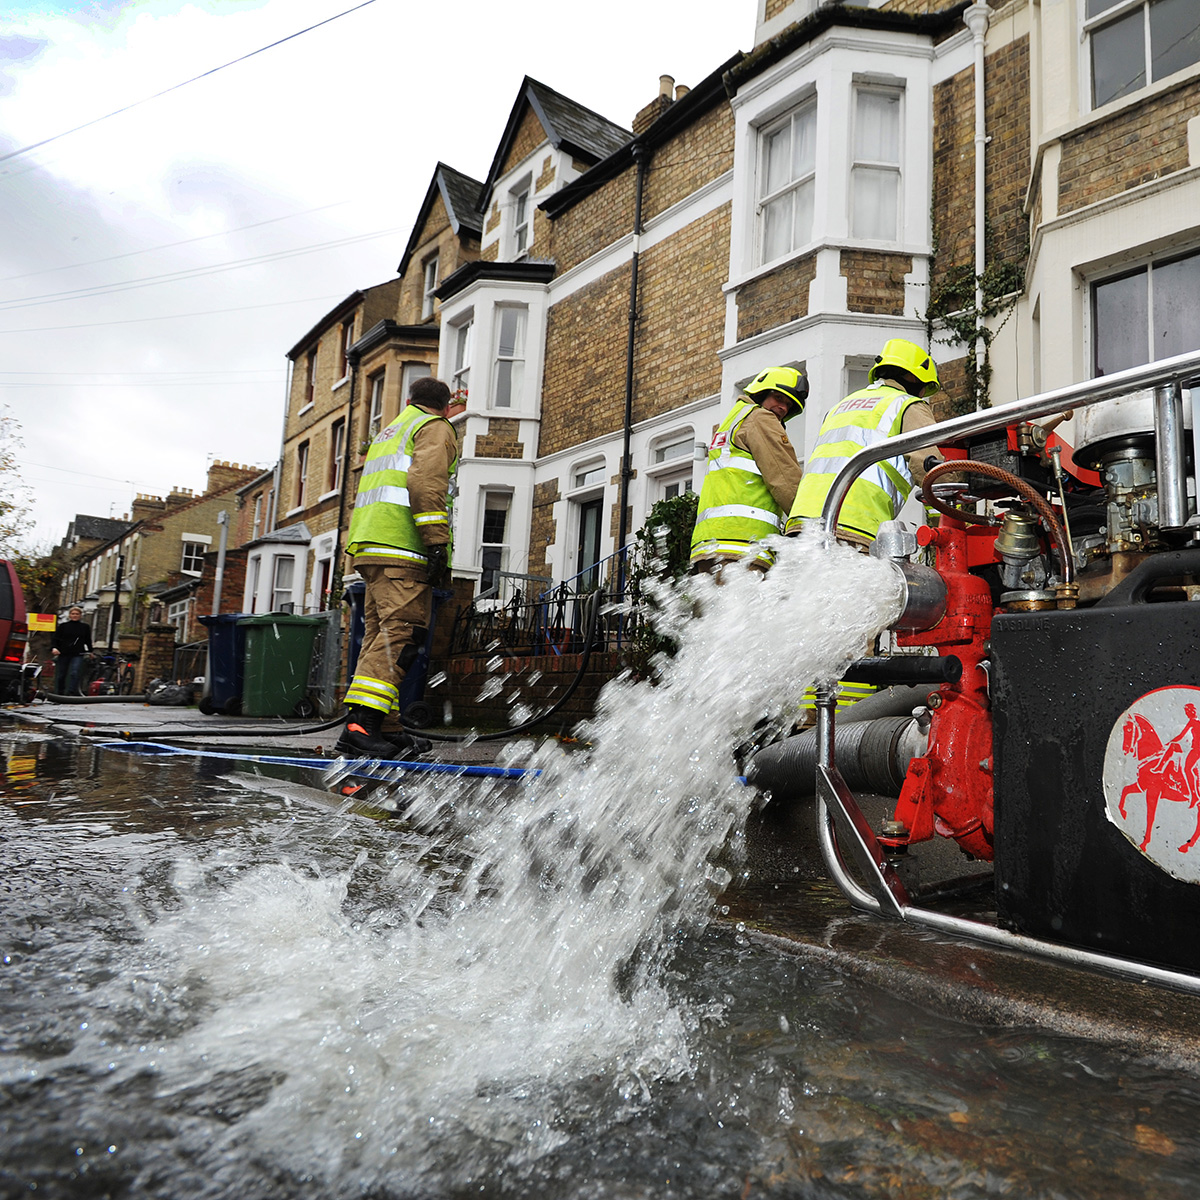 Flood warning for parts of Oxford with more rain expected